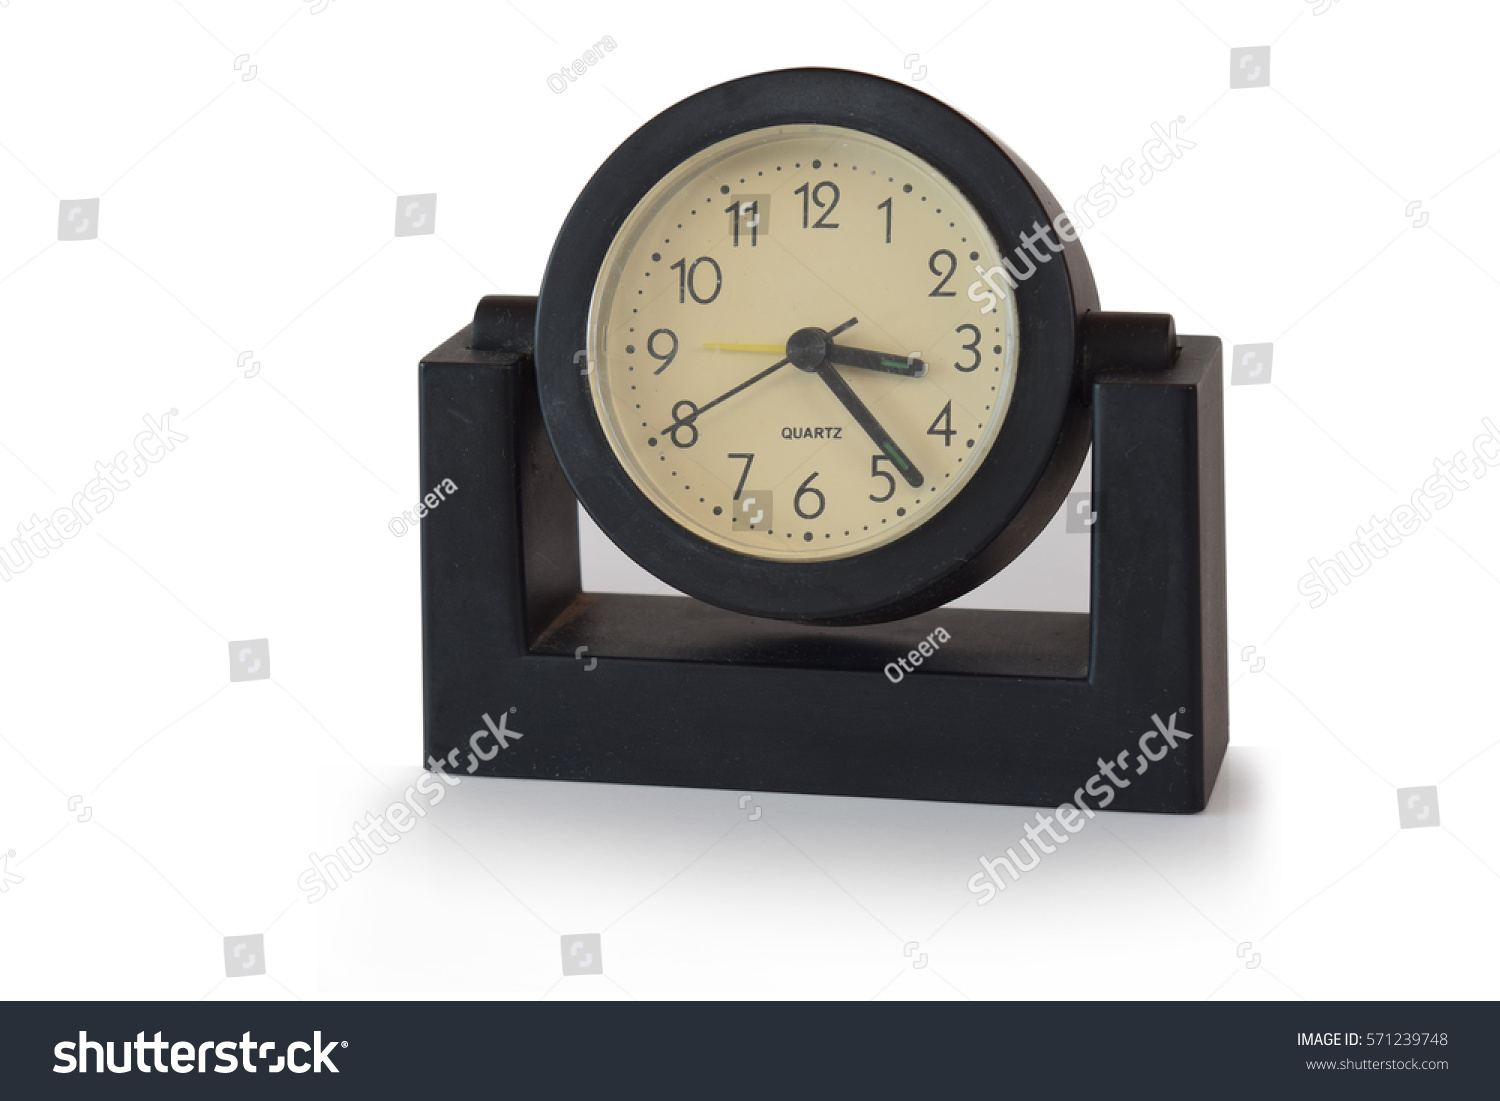 Desk Clock Modern Style Black On Stock Photo Edit Now 571239748